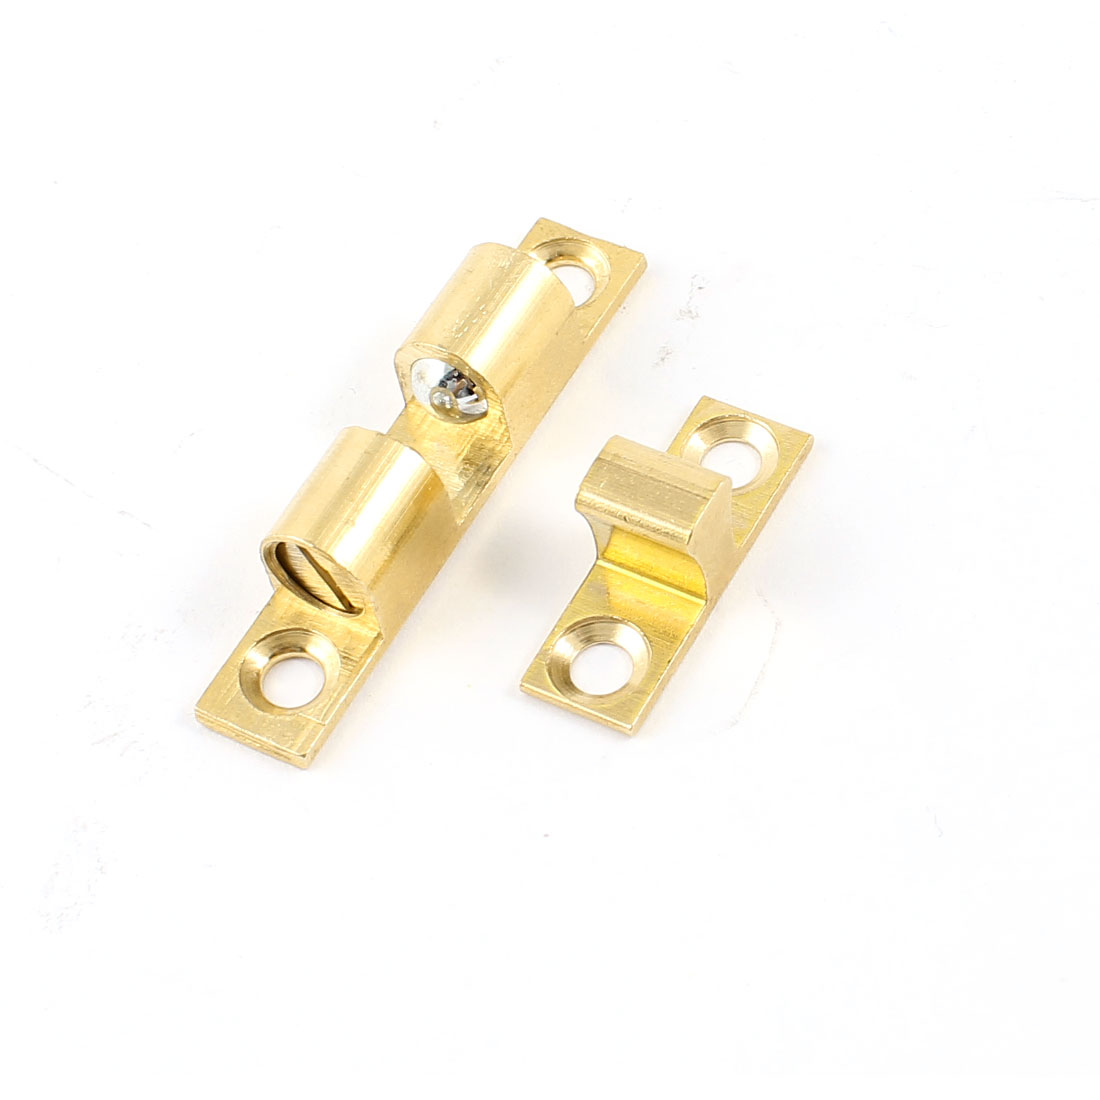 Cupboard Cabinet Door Gold Tone Double Ball Catch 3.5mm Hole Dia